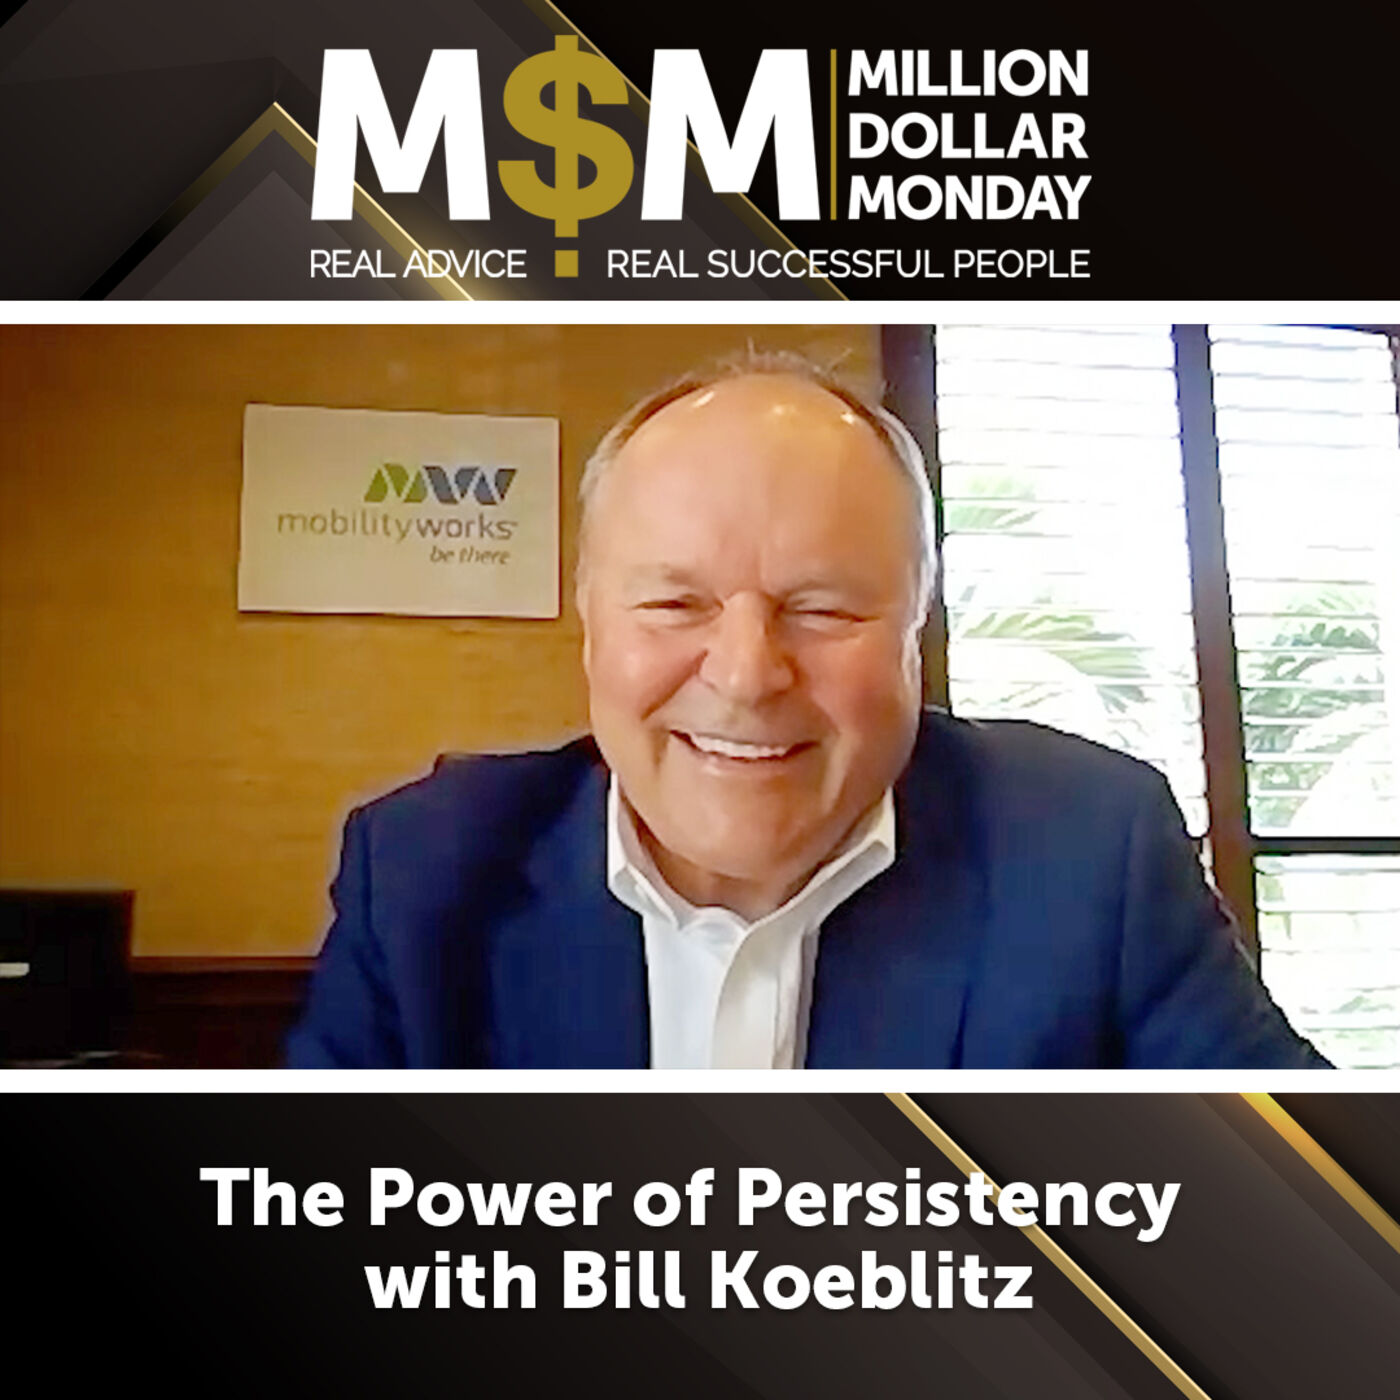 The Power of Persistency with Bill Koeblitz